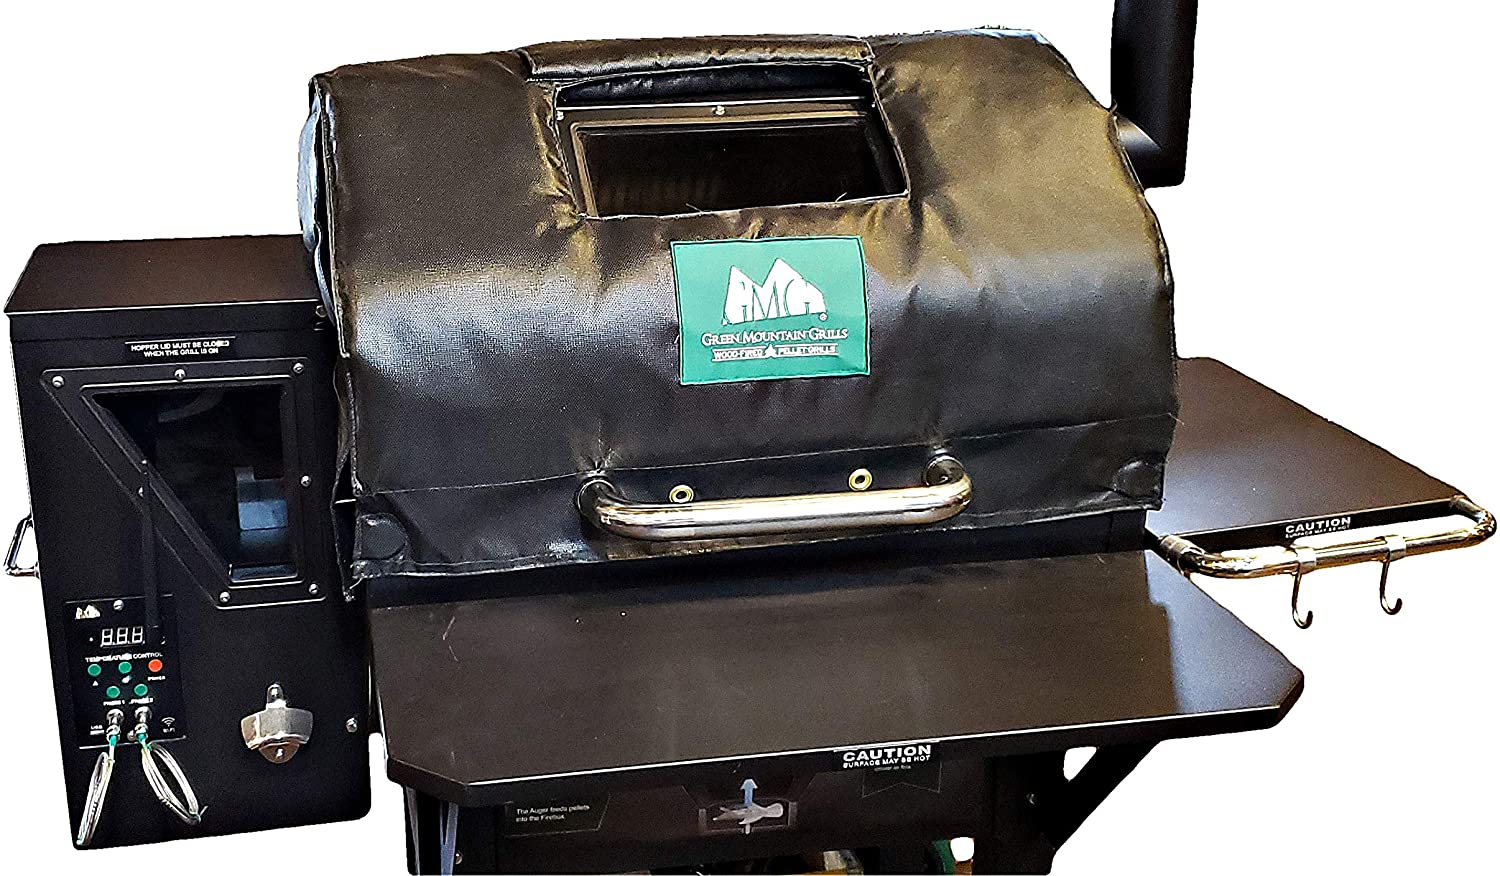 Green Mountain Grills Thermal Blanket For Daniel Boone